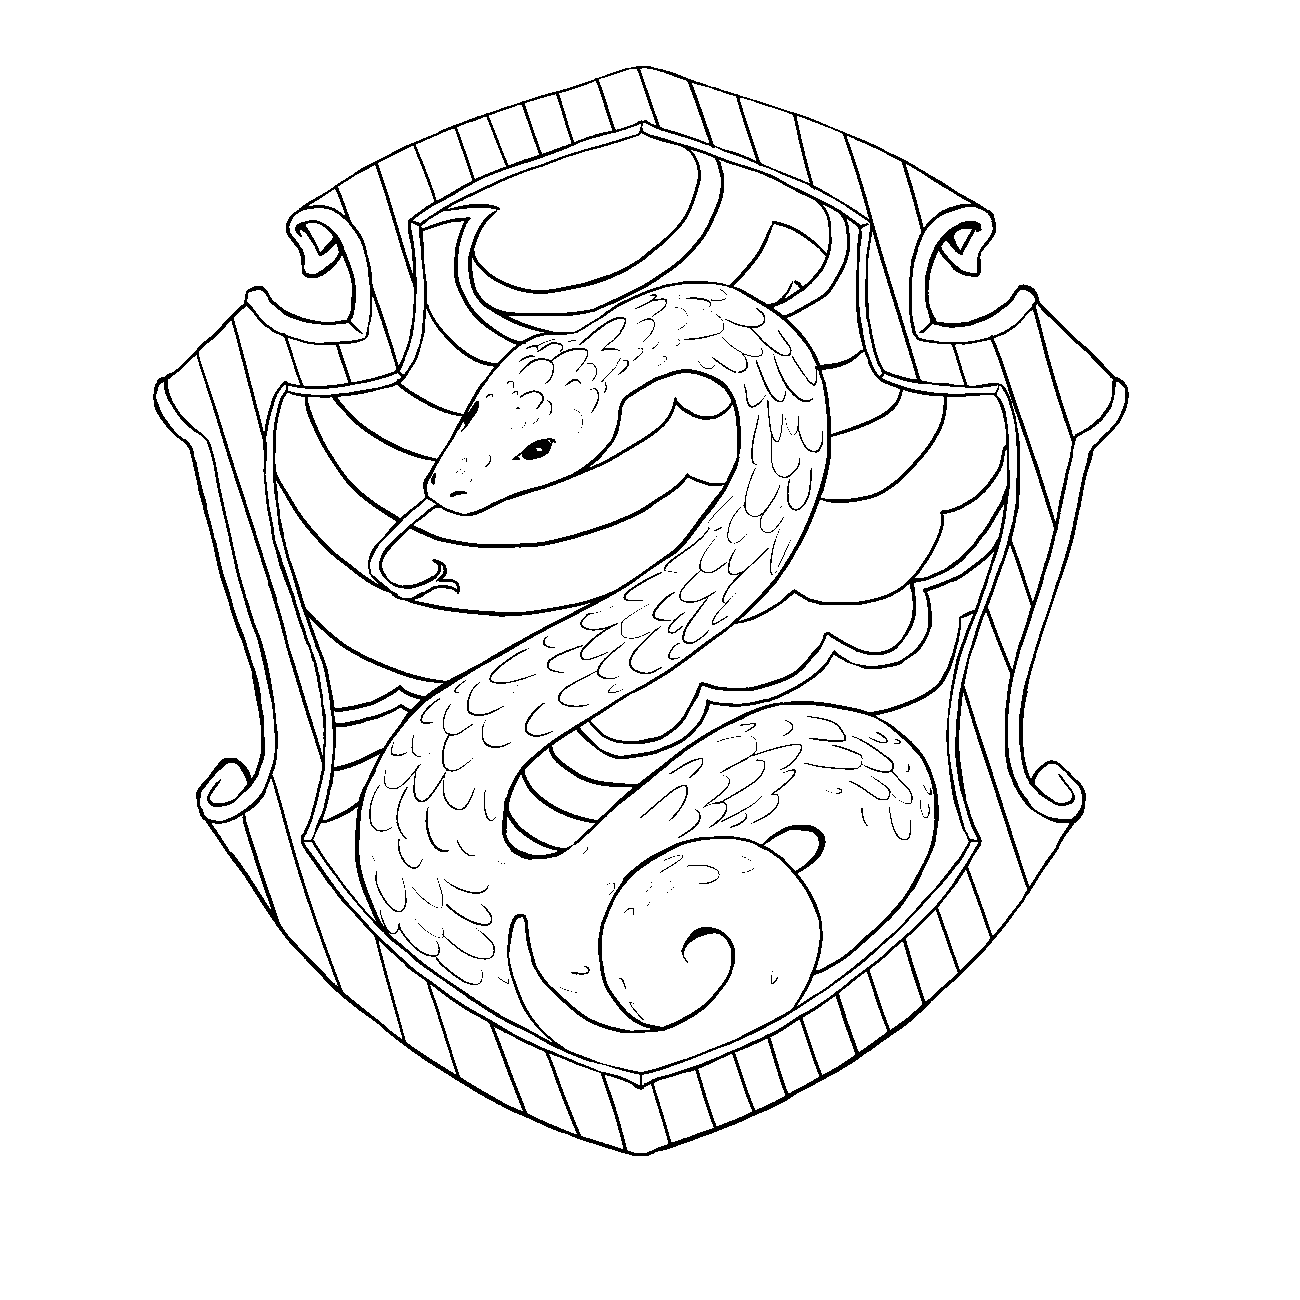 Slytherin drawing ravenclaw. Hufflepuff crest pottermore coloring